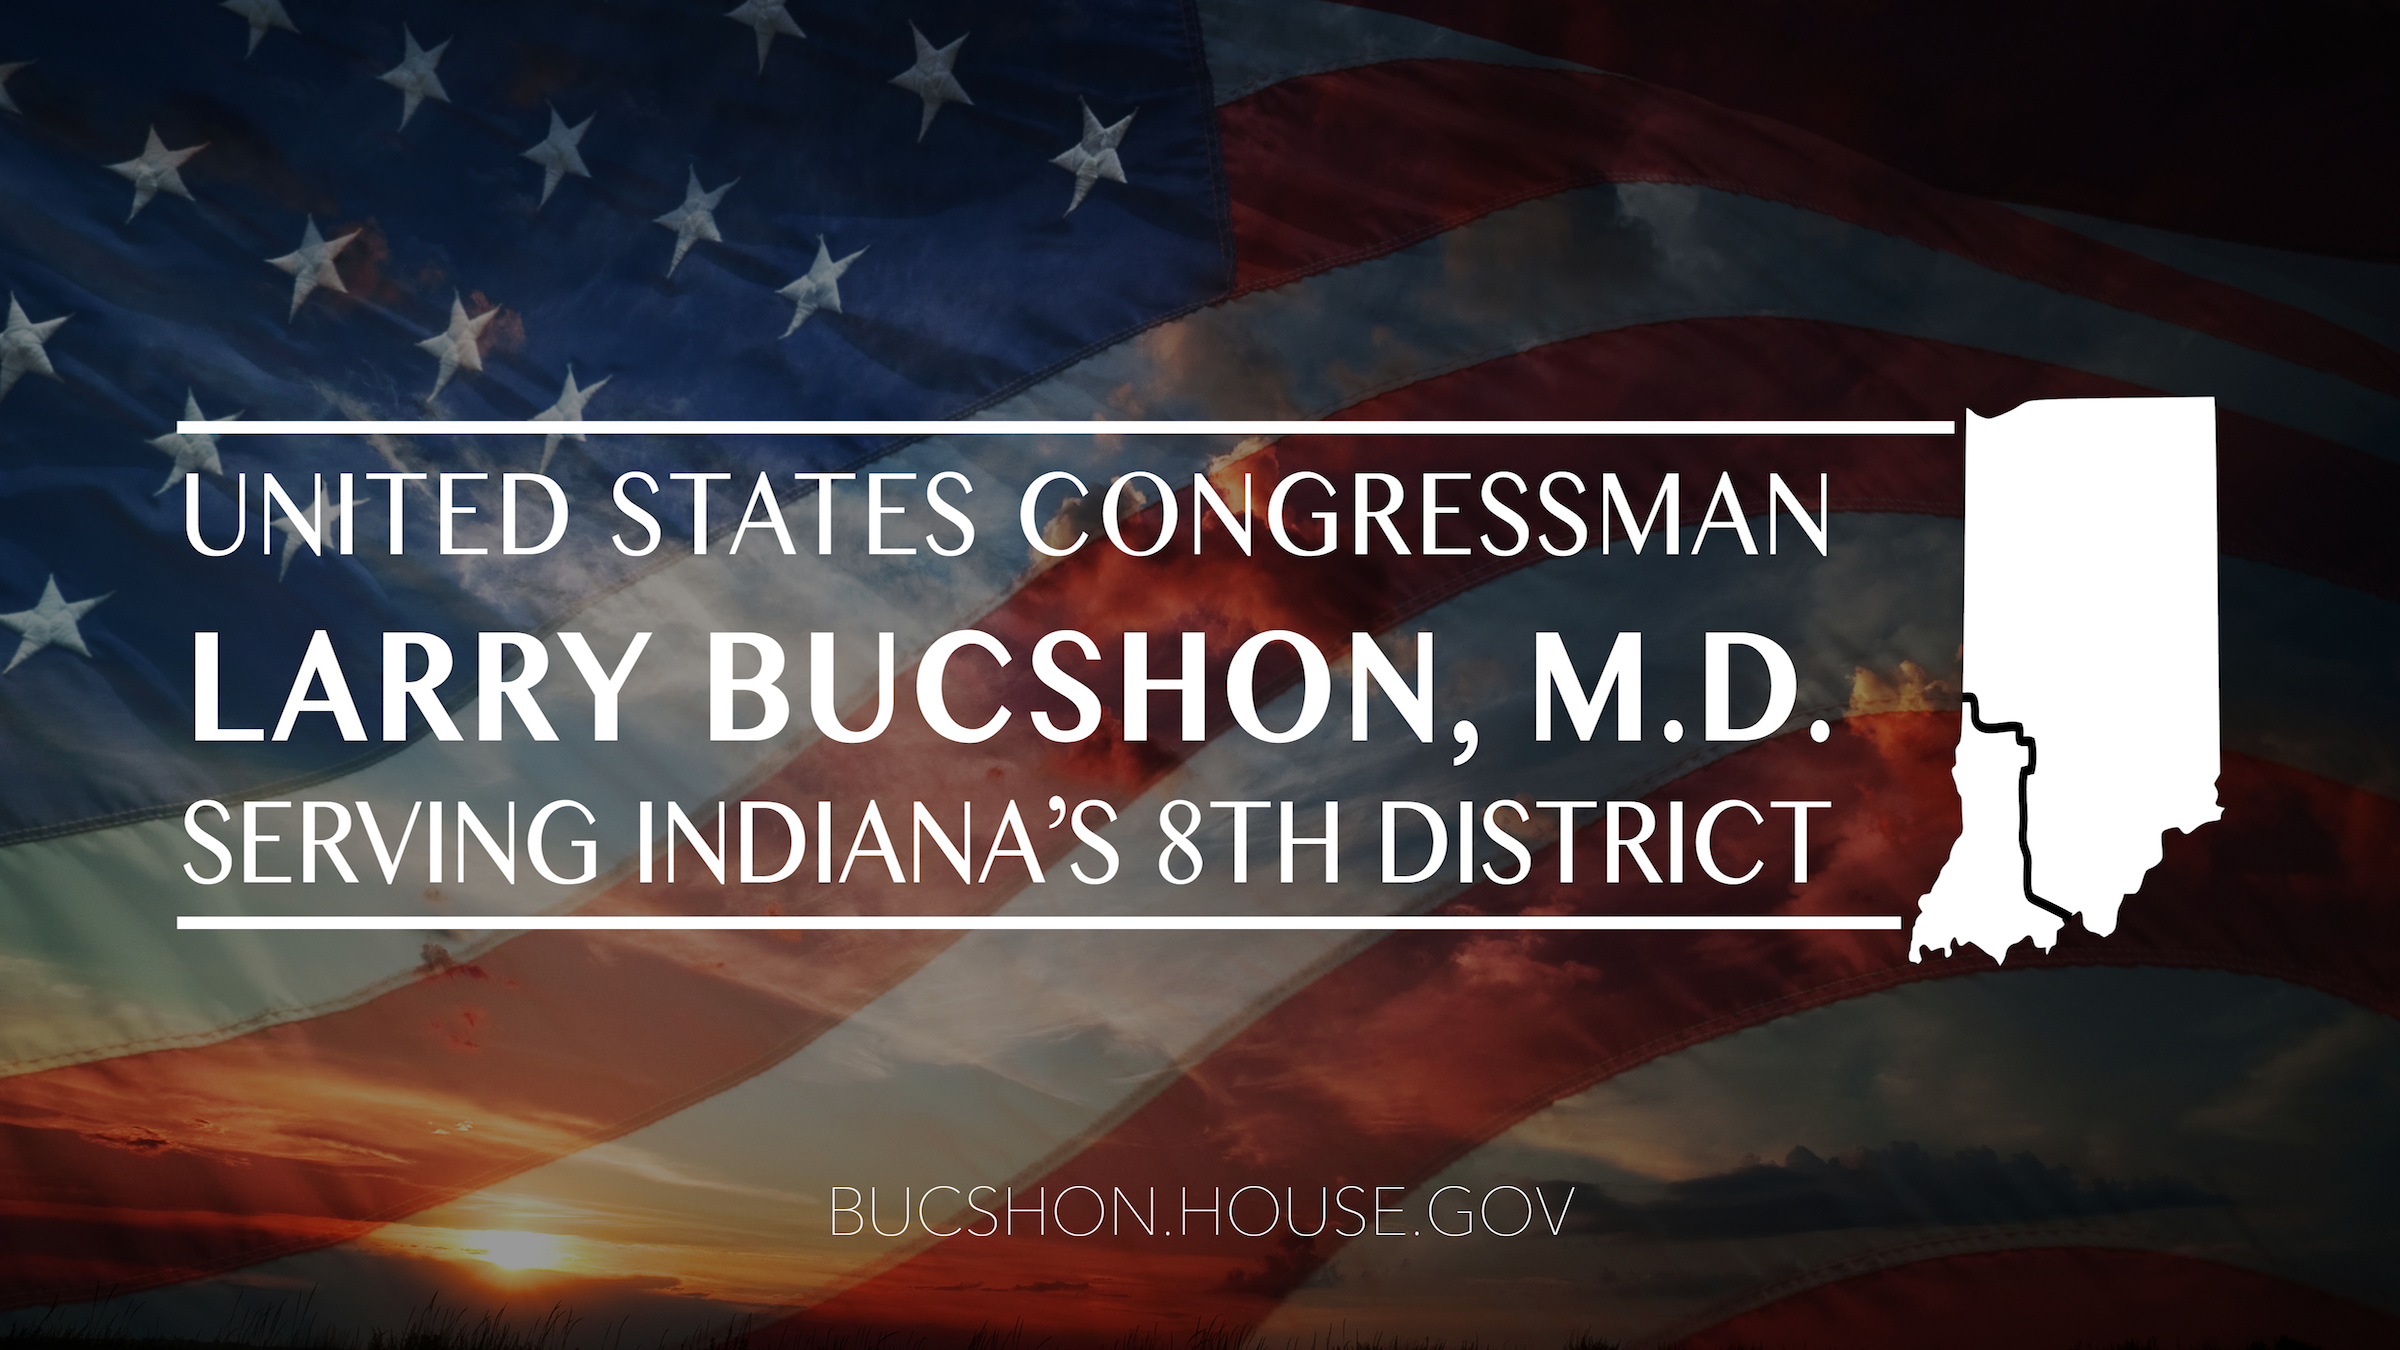 Dr. Bucshon Supports Bipartisan Retirement Reform Legislation